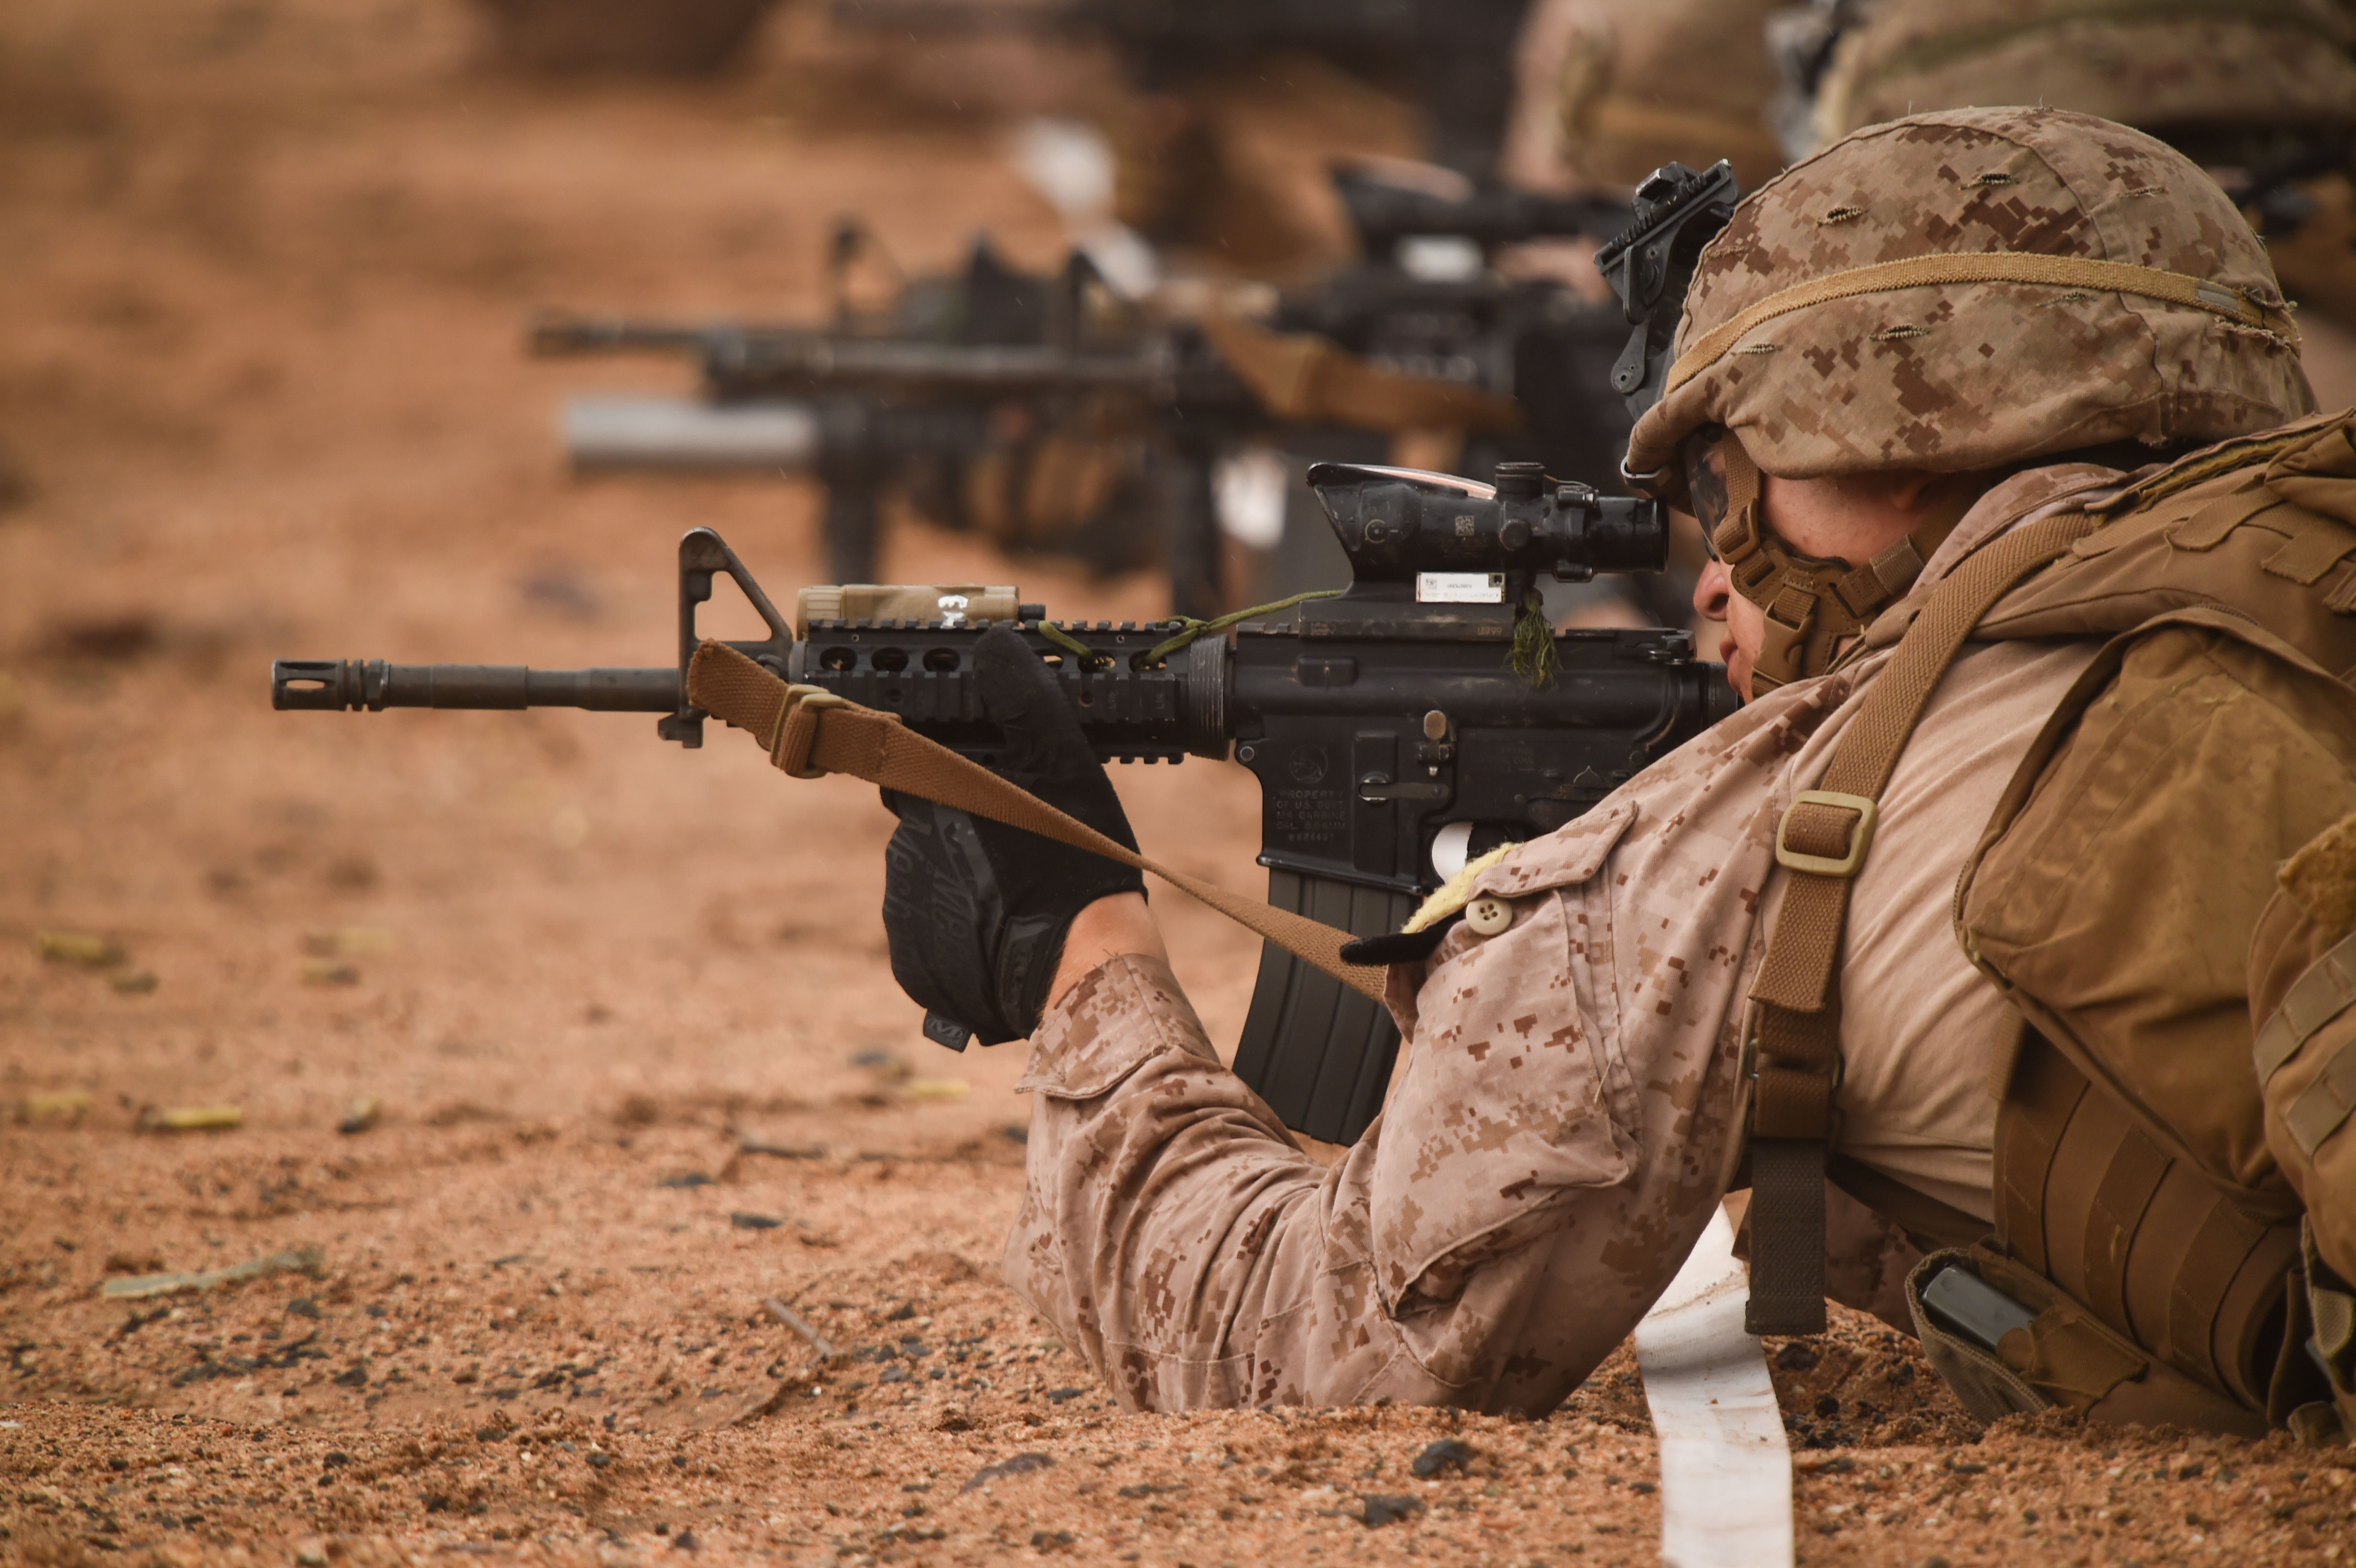 U.S. Marines with Alpha Company, 1st Battalion, 11th Marine Expeditionary Unit (MEU), focus downrange in a prone position during a Combat Marksmanship Program shoot, Feb. 14, 2017, at Arta Beach in Djibouti. Marines worked on engaging a target while moving and under physical stress. A MEU is a forward-deployed, flexible sea-based Marine air-ground task force ready to respond to crisis and conduct limited contingency operations. (U.S. Air National Guard photo by Staff Sgt. Penny Snoozy)